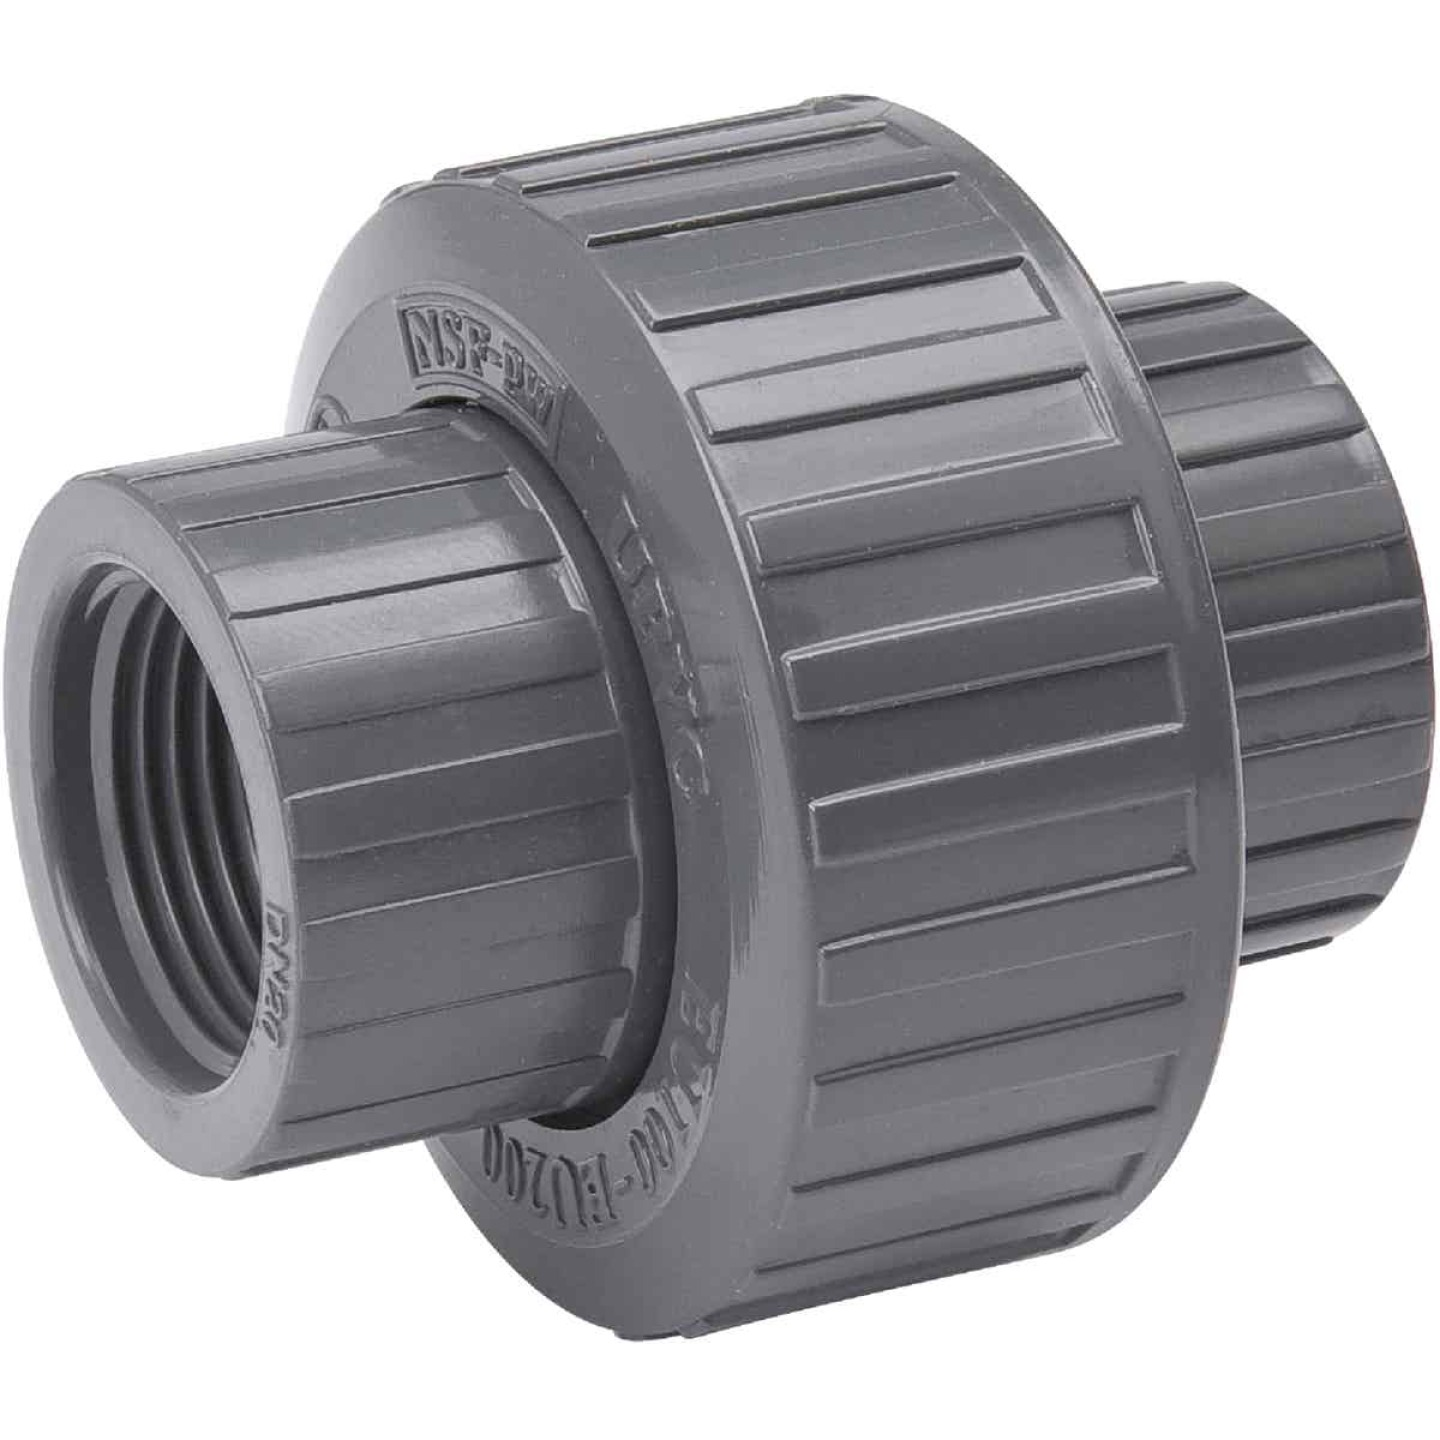 B&K 3/4 In. Threaded Schedule 80 PVC Union Image 1